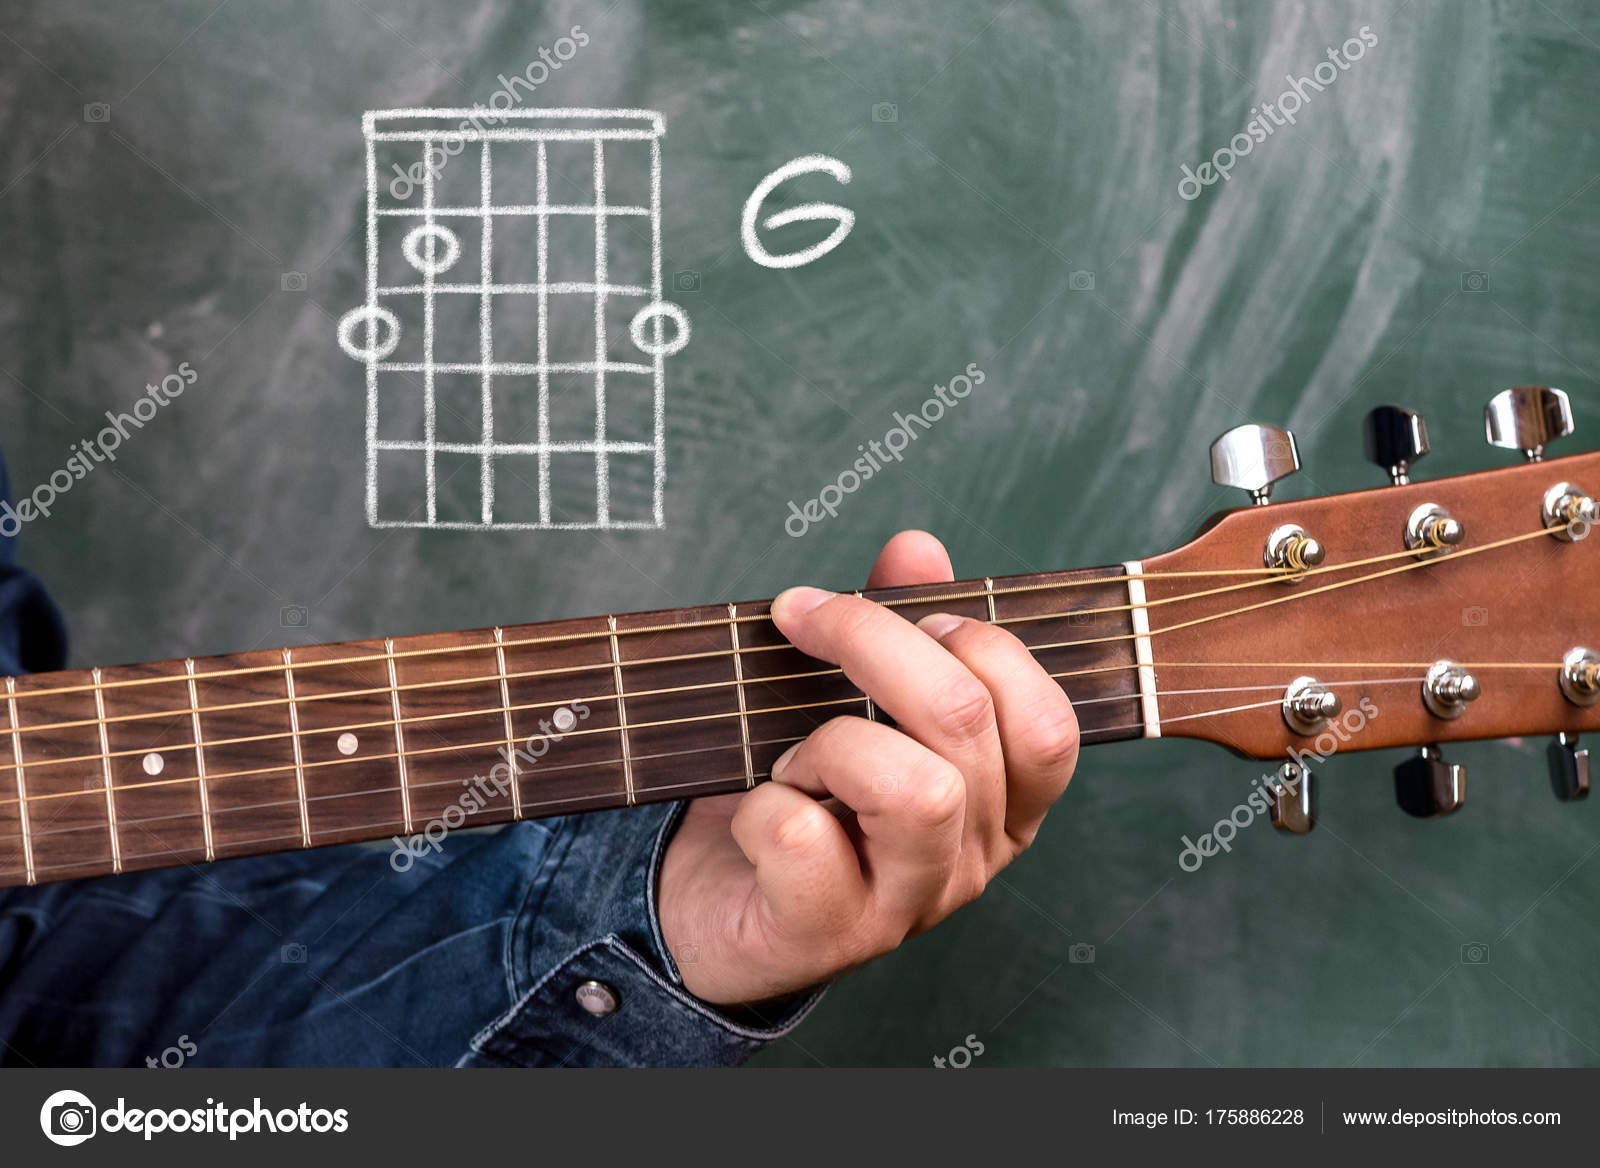 Man Blue Denim Shirt Playing Guitar Chords Displayed Blackboard